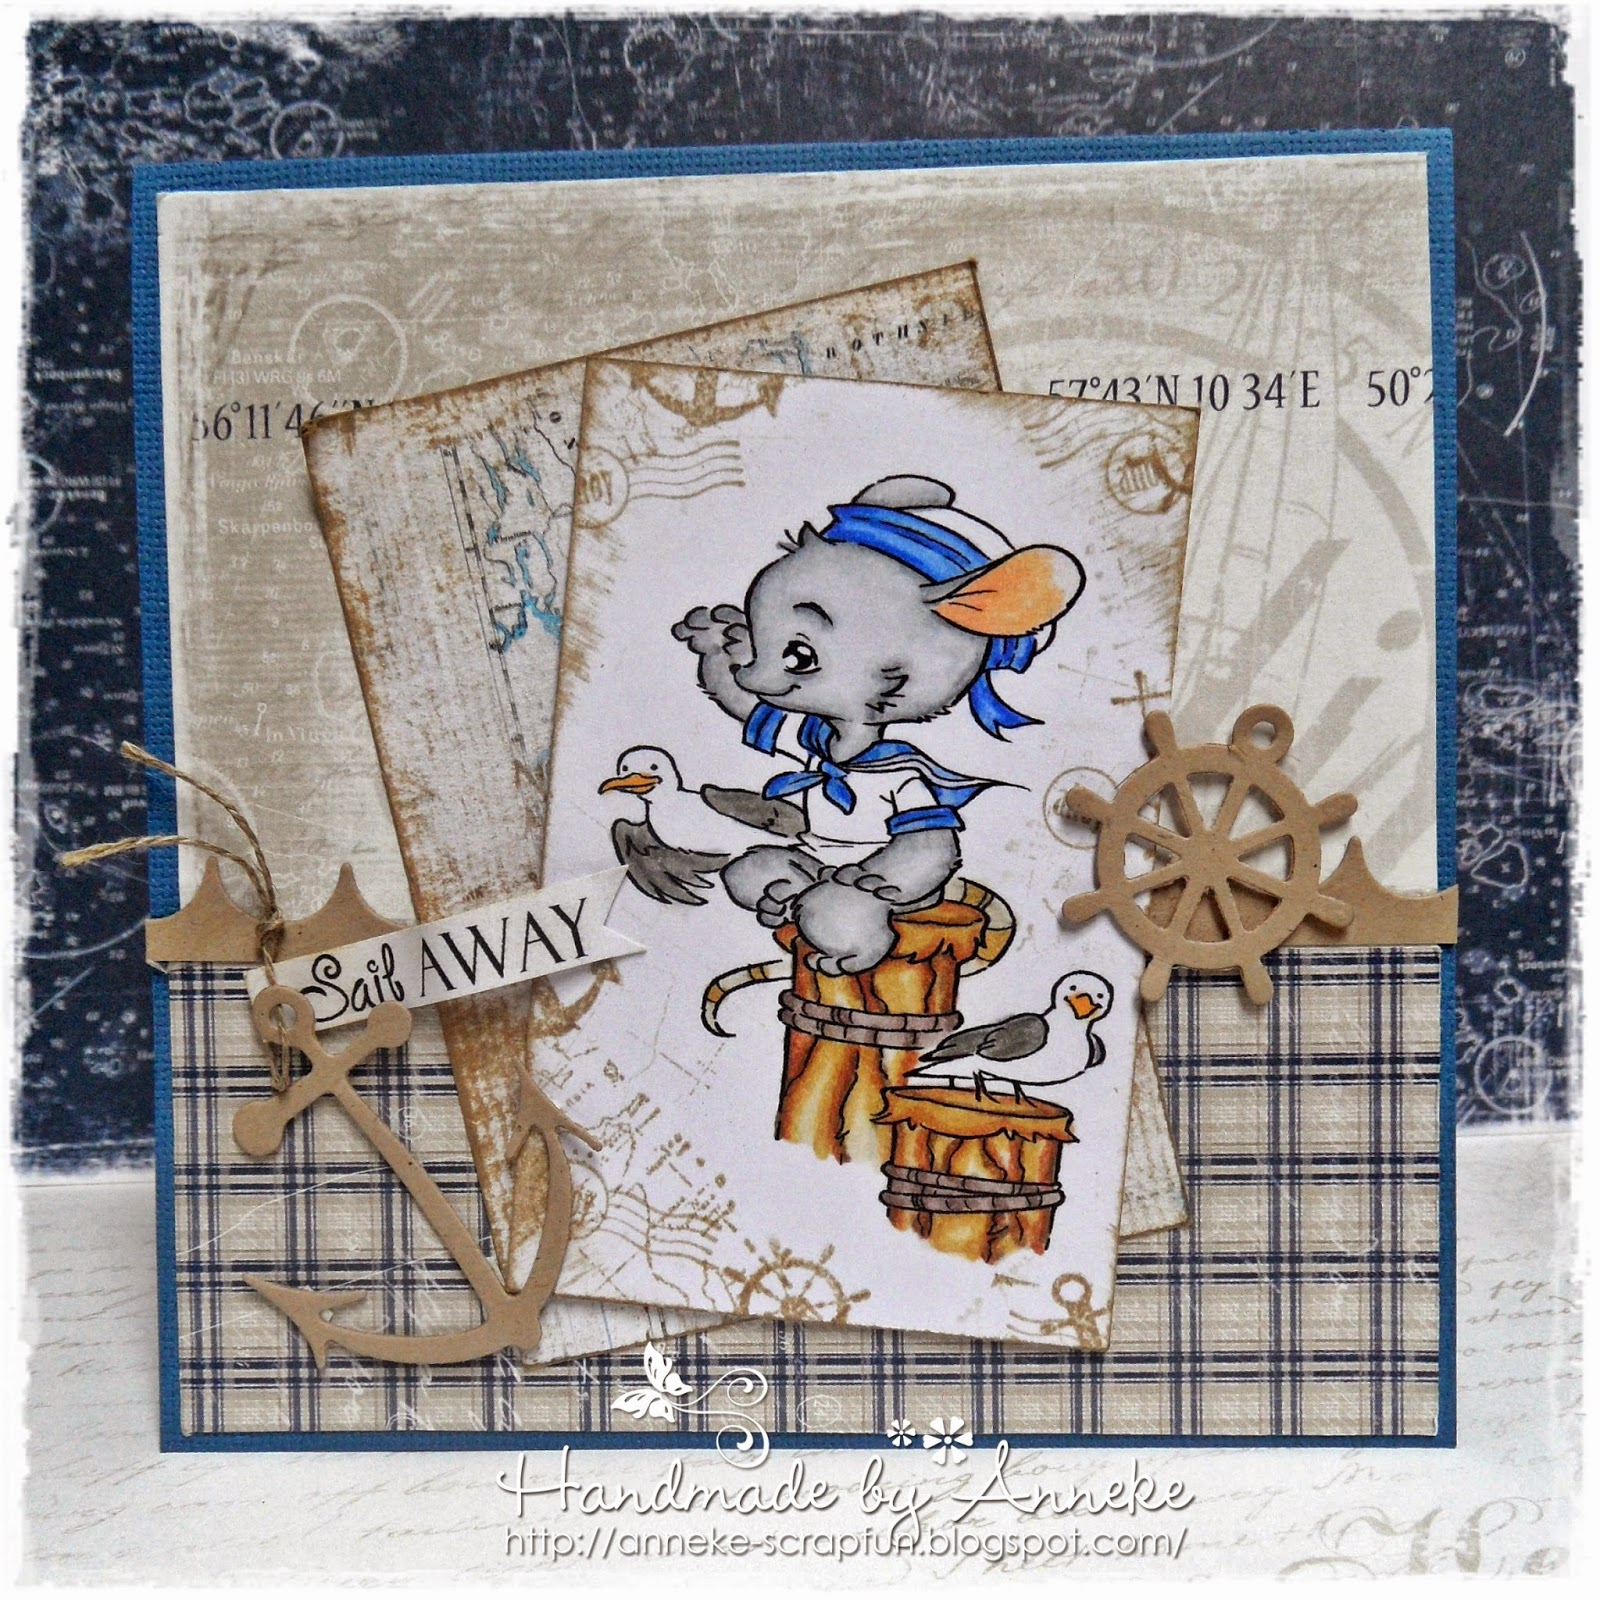 http://anneke-scrapfun.blogspot.be/2014/07/sail-away.html